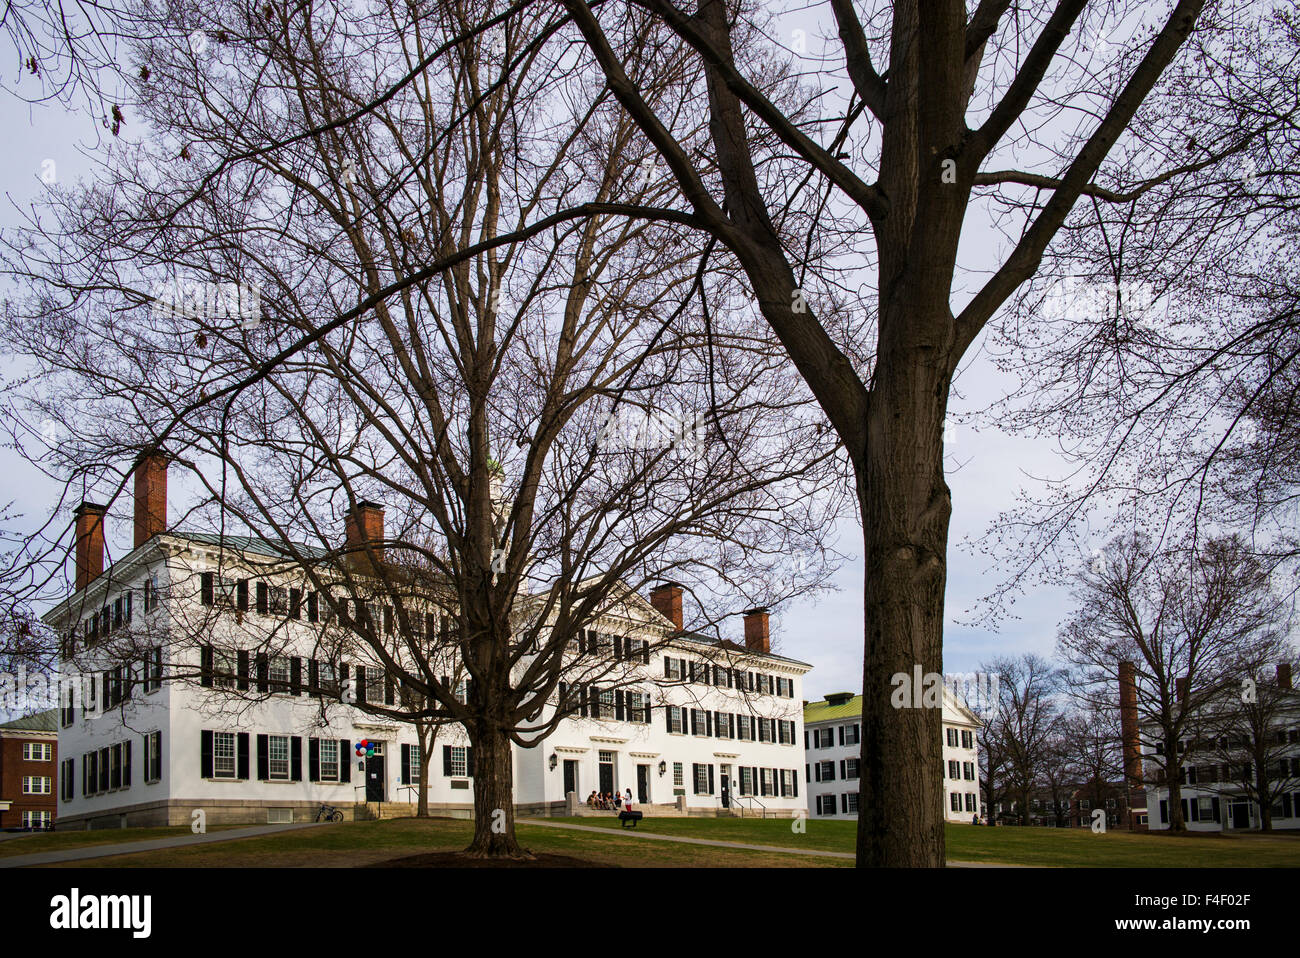 New Hampshire, Hanover, Dartmouth College, Dartmouth Hall on The Green Stock Photo